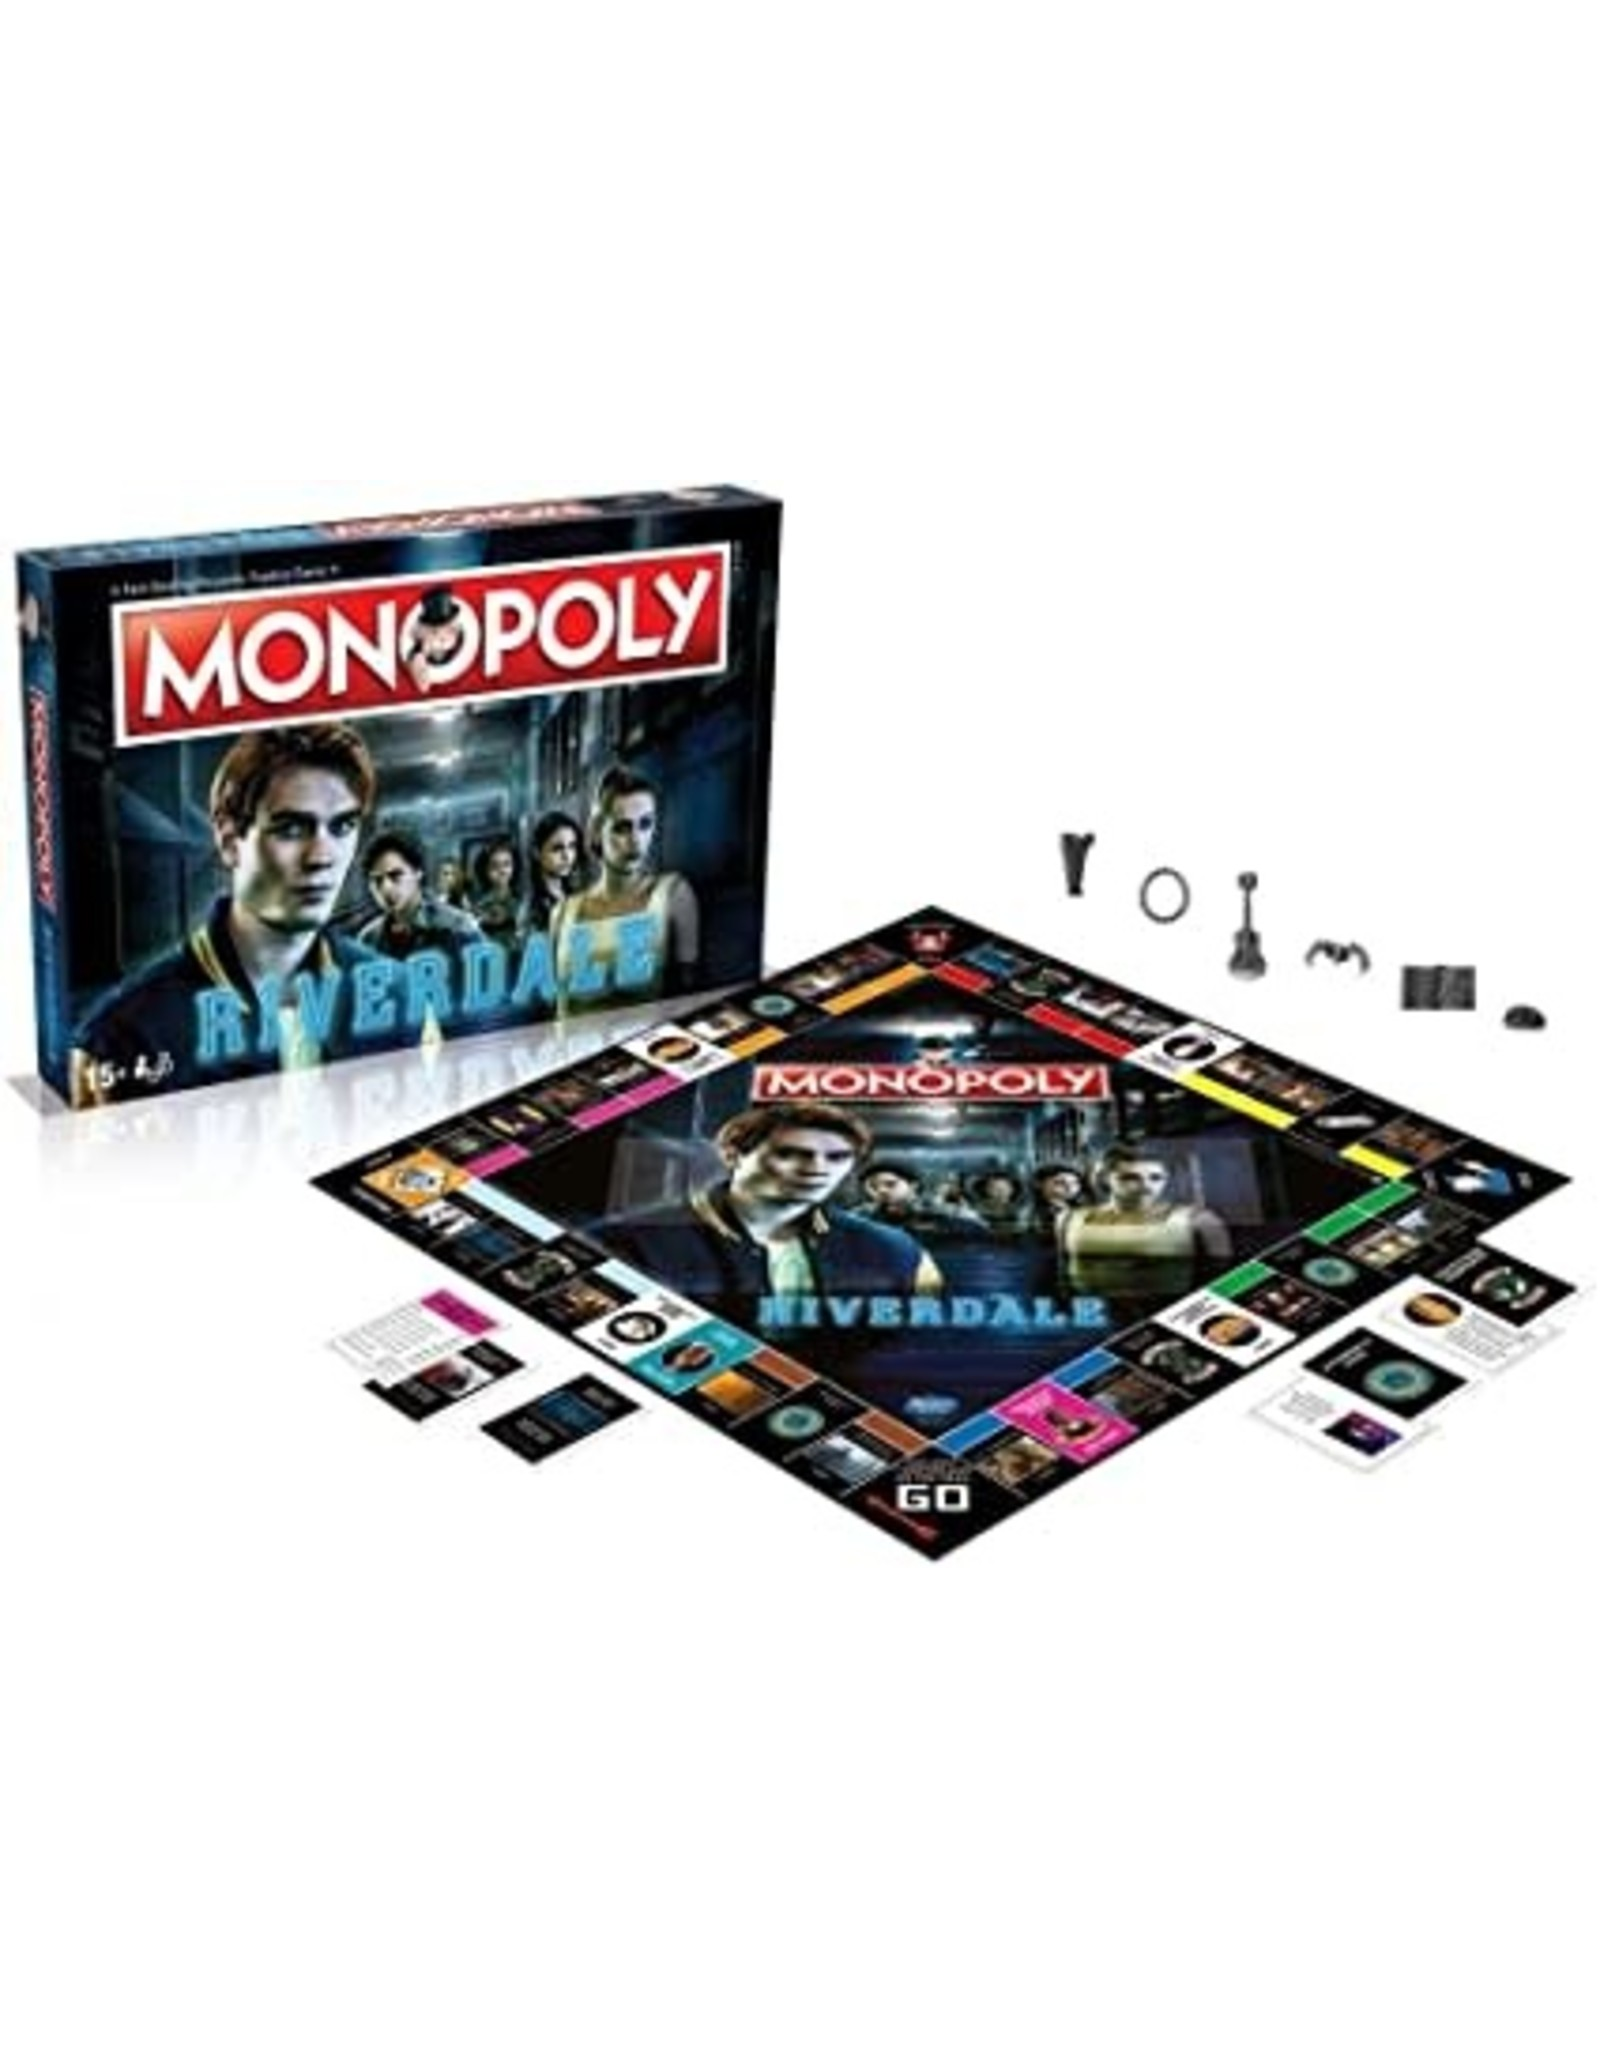 Monopoly Riverdale - clearance final sale